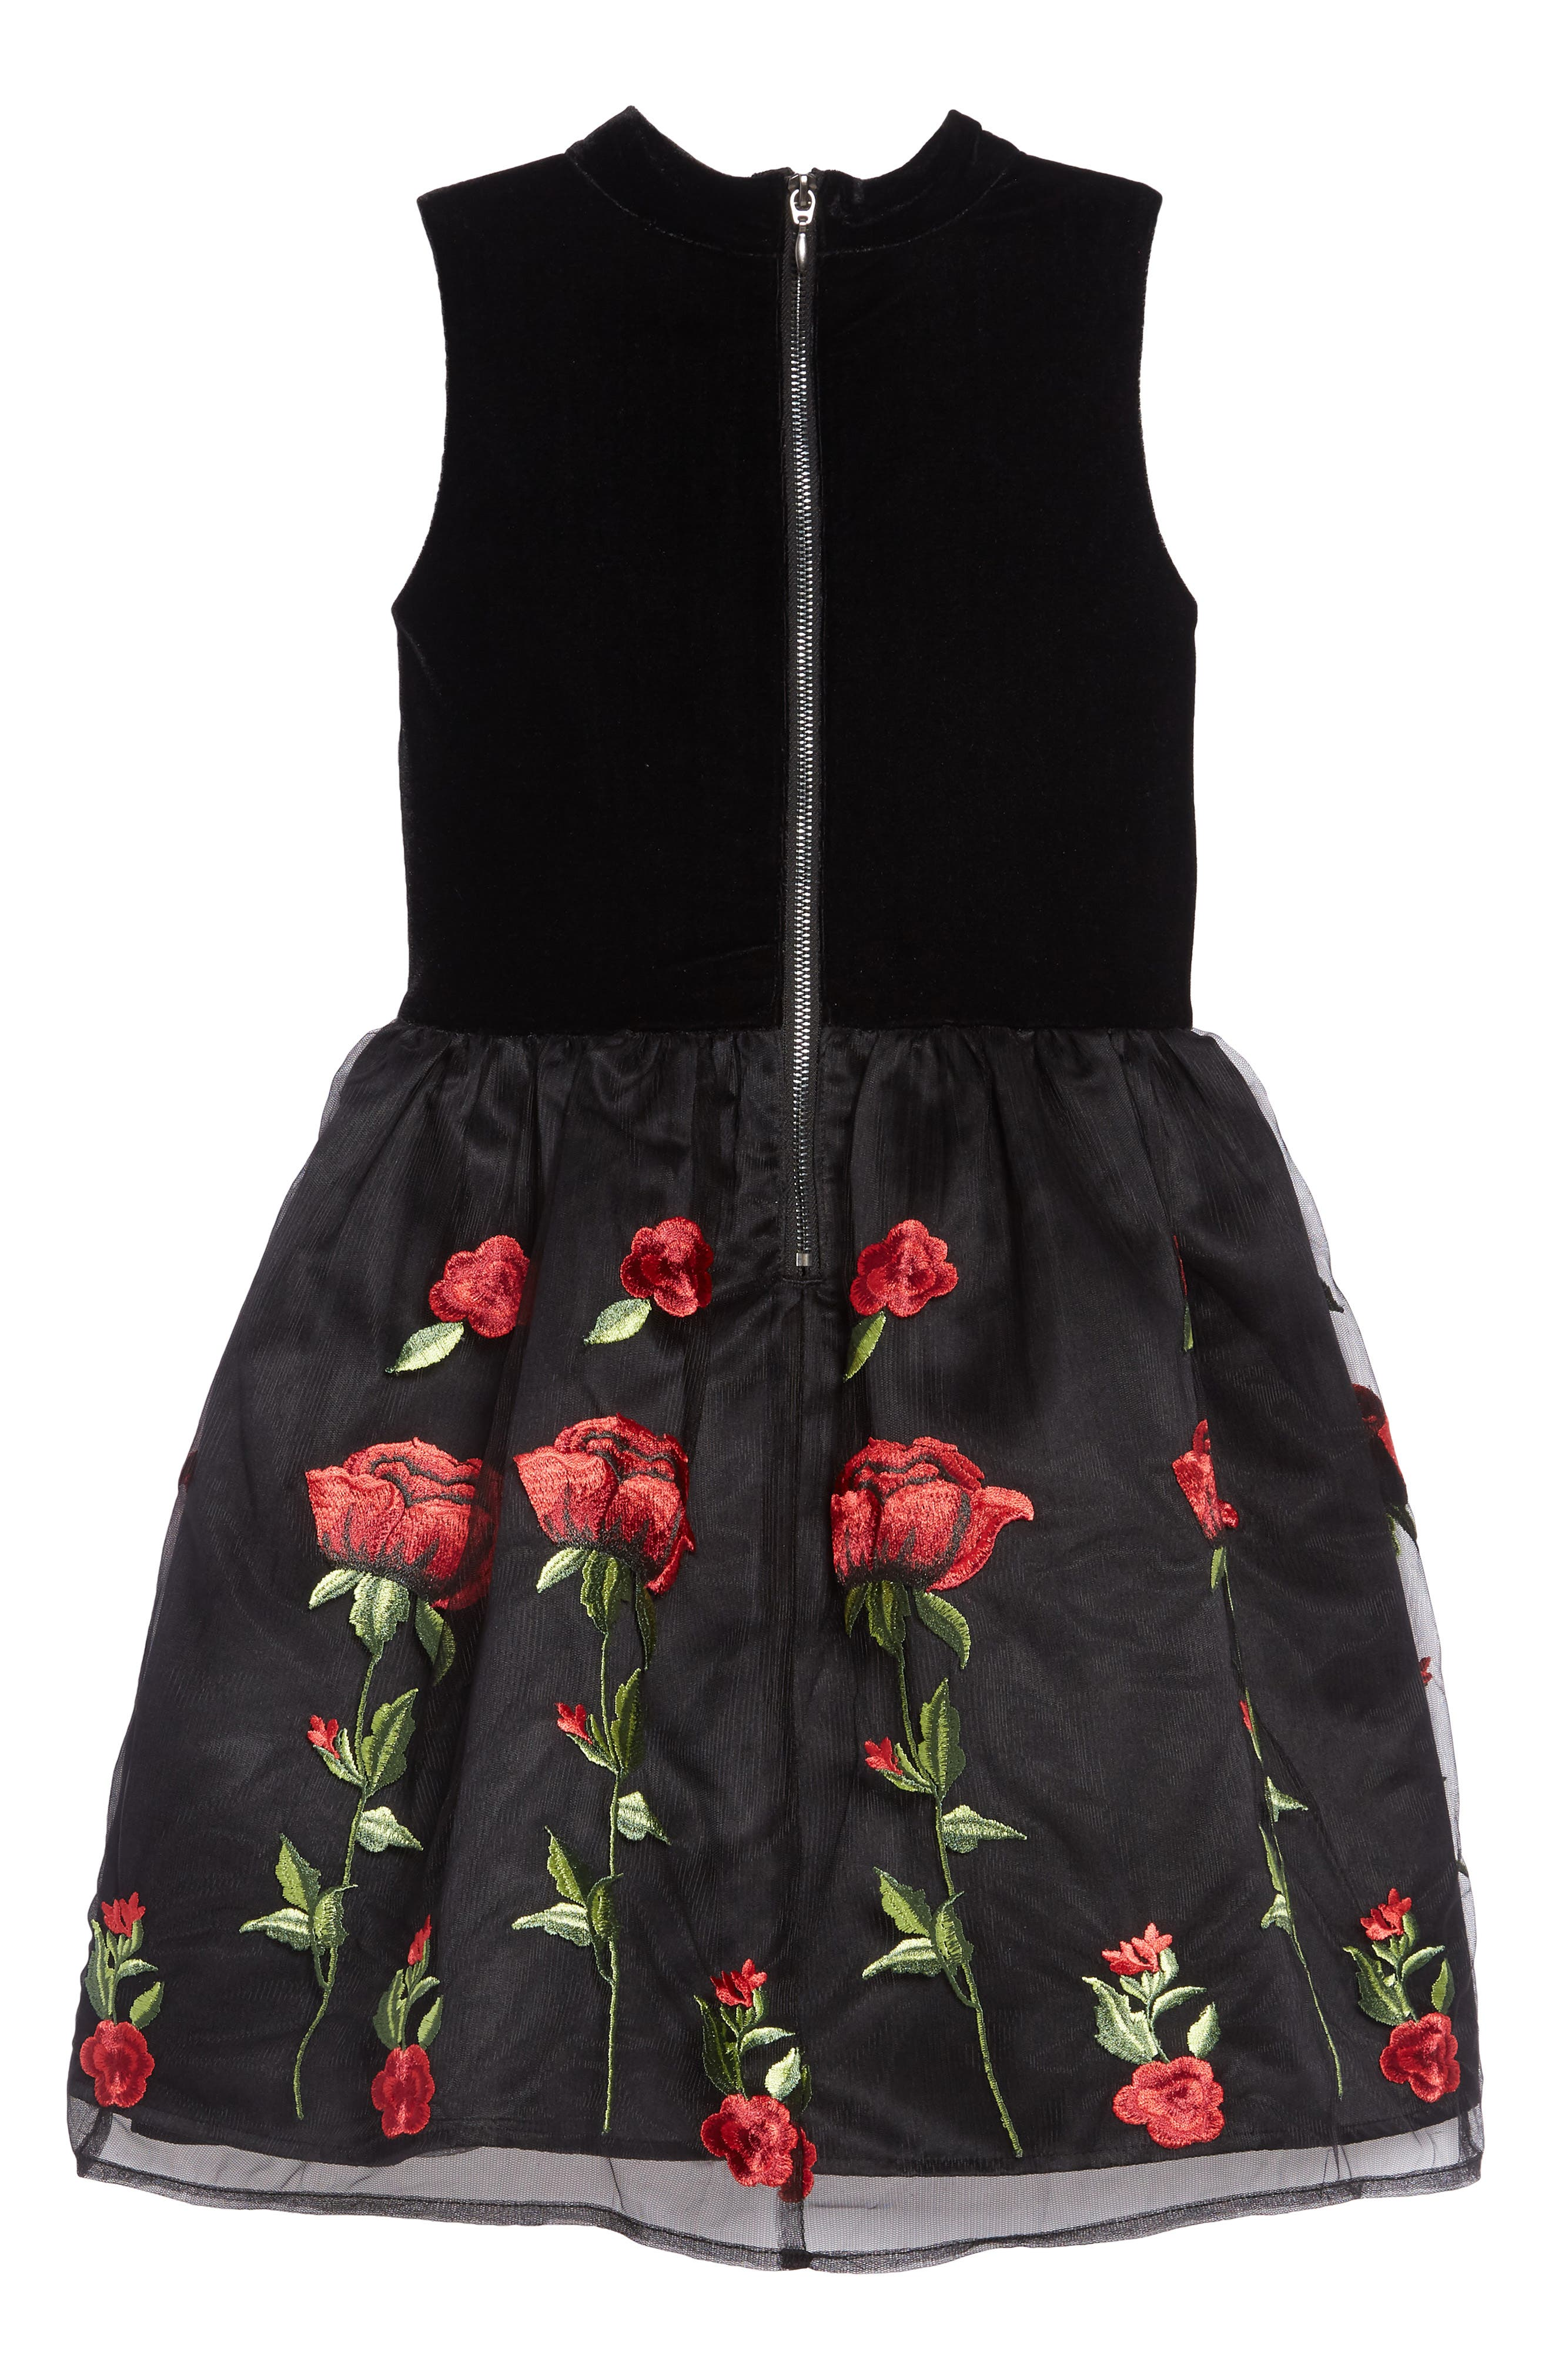 BLUSH BY US ANGELS,                             Floral Embroidered Stretch Velvet Dress,                             Alternate thumbnail 2, color,                             BLACK/RED